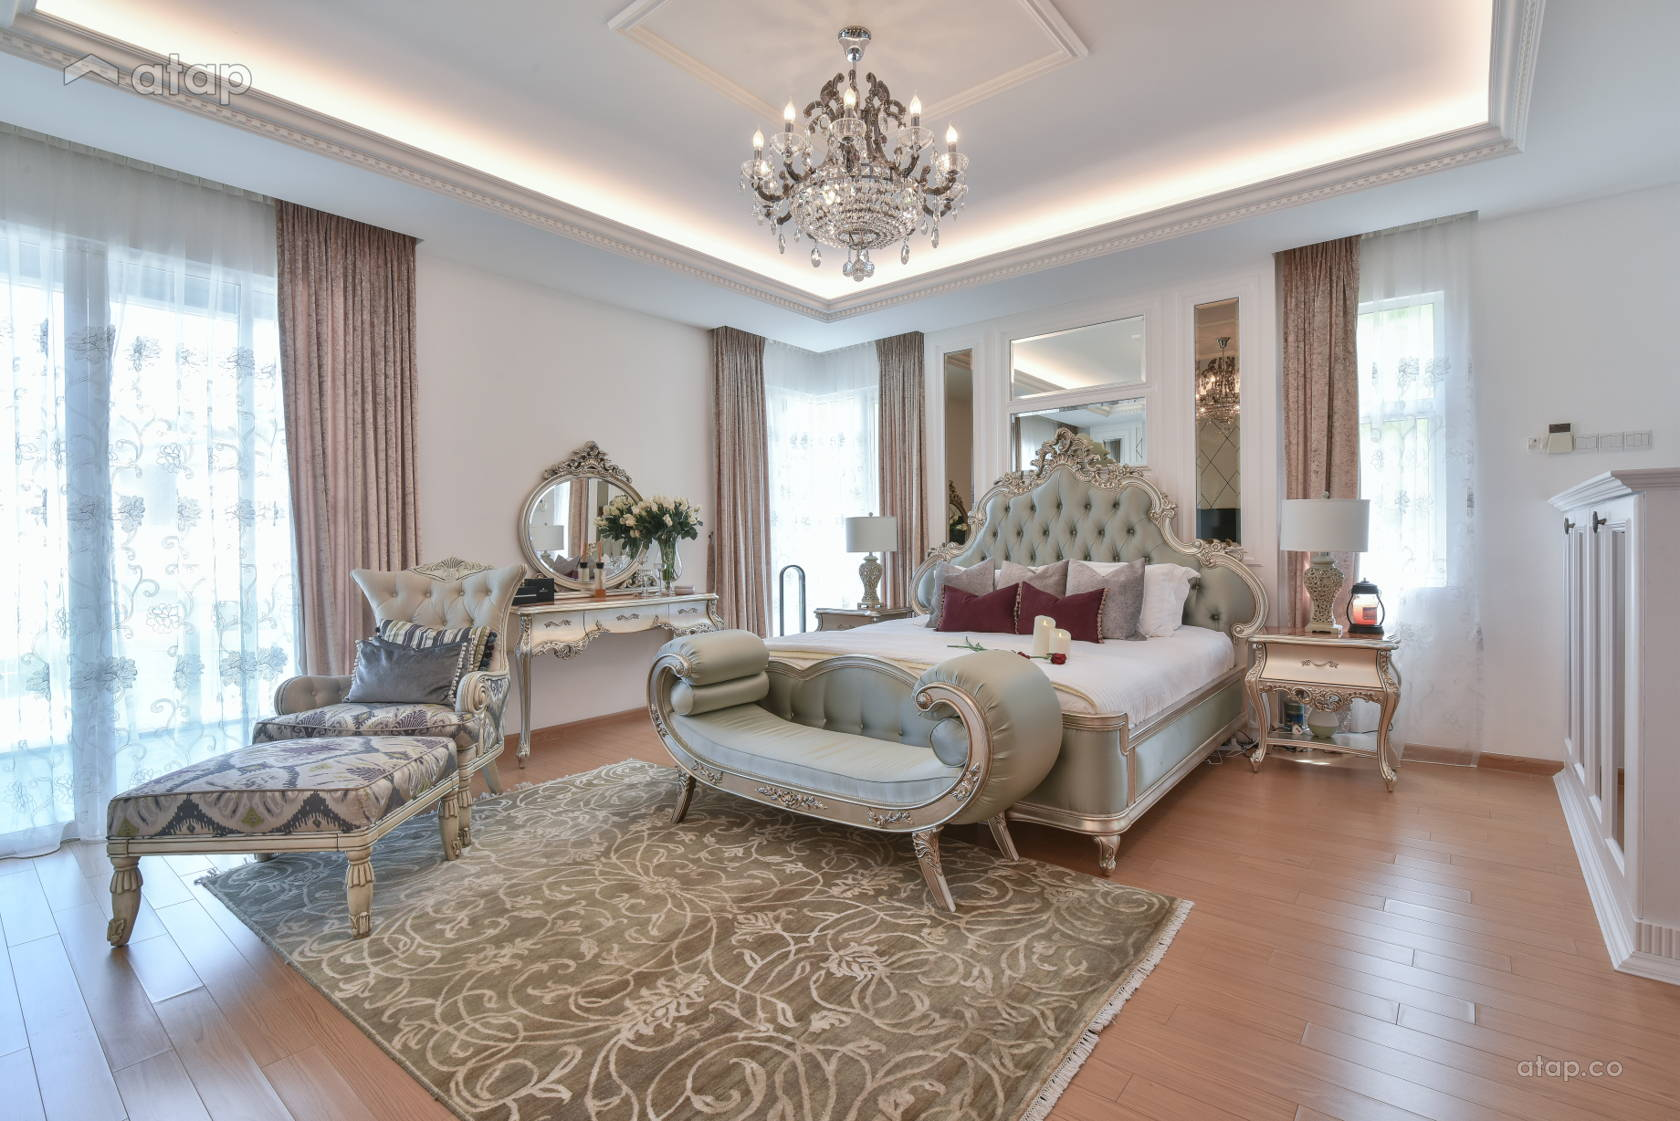 beverly heights interior design renovation ideas photos and price 1 7